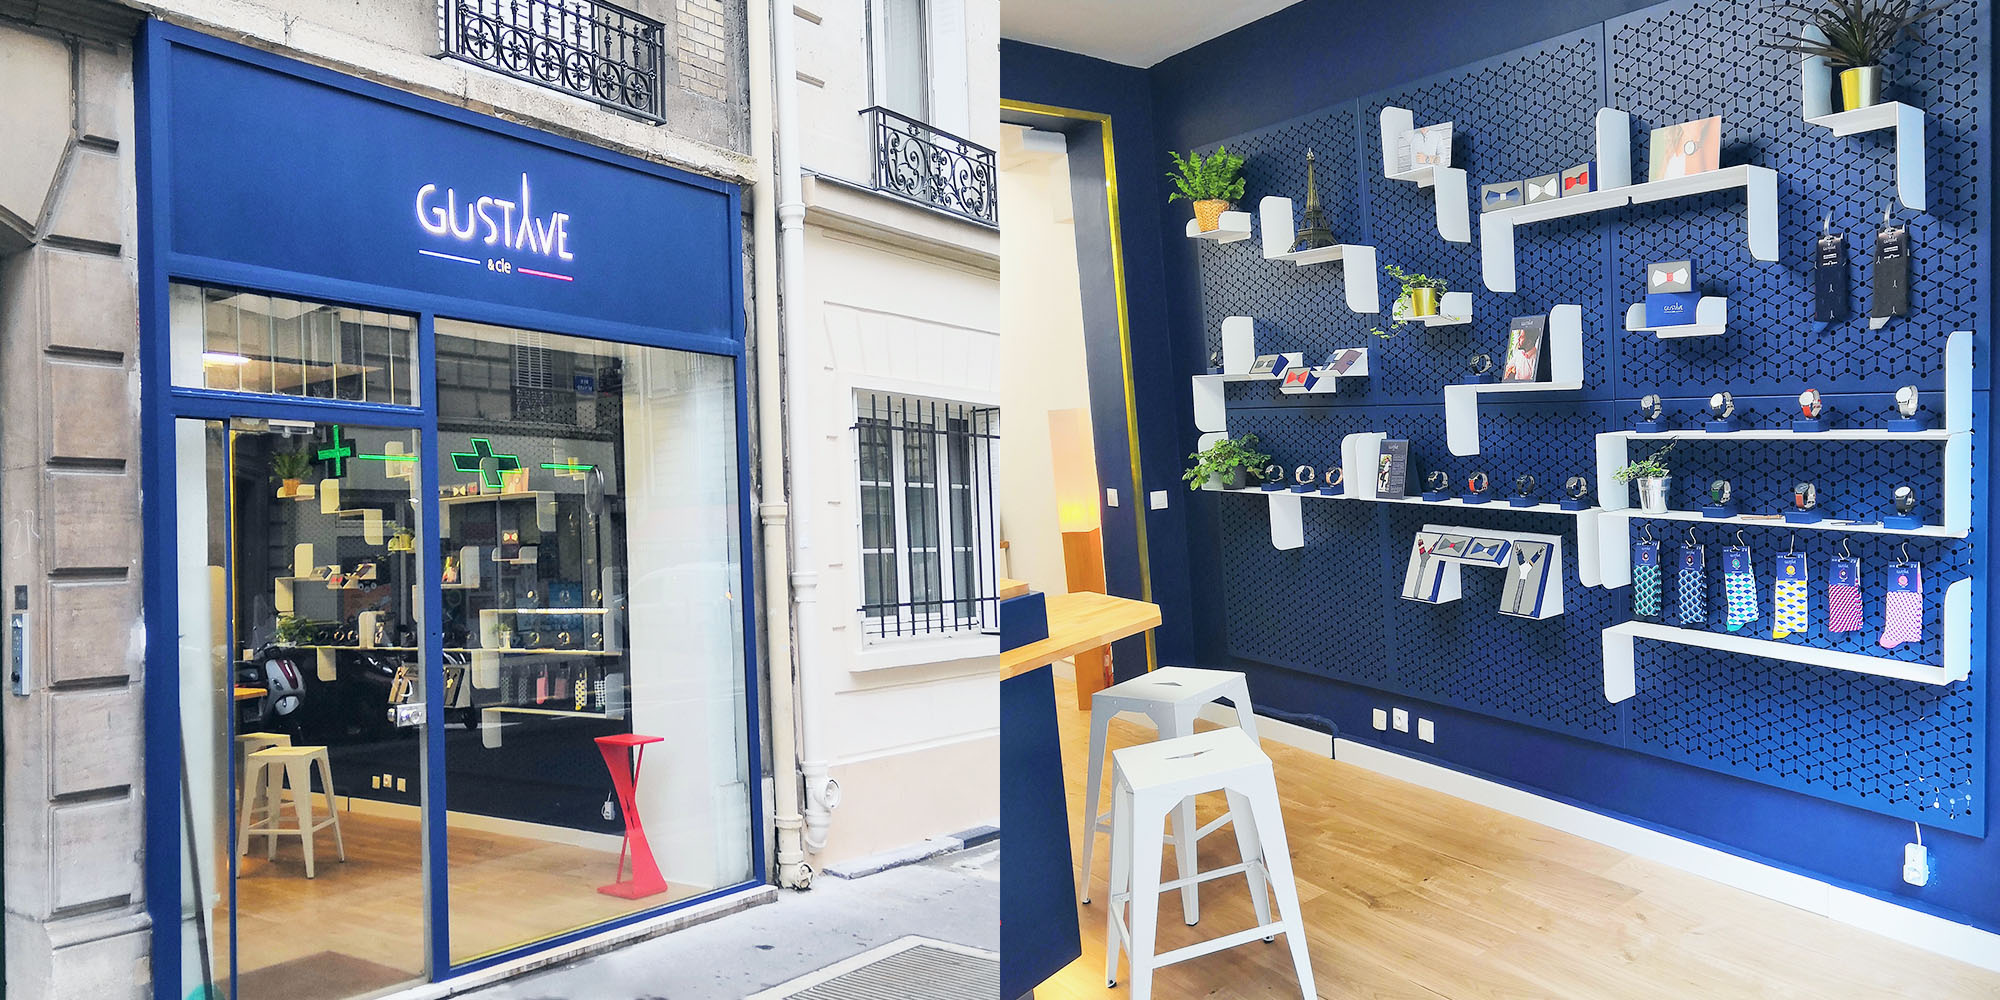 Gustave et cie boutiques, Shops, GUSTAVE & amp; cie, GUSTAVE & amp; cie